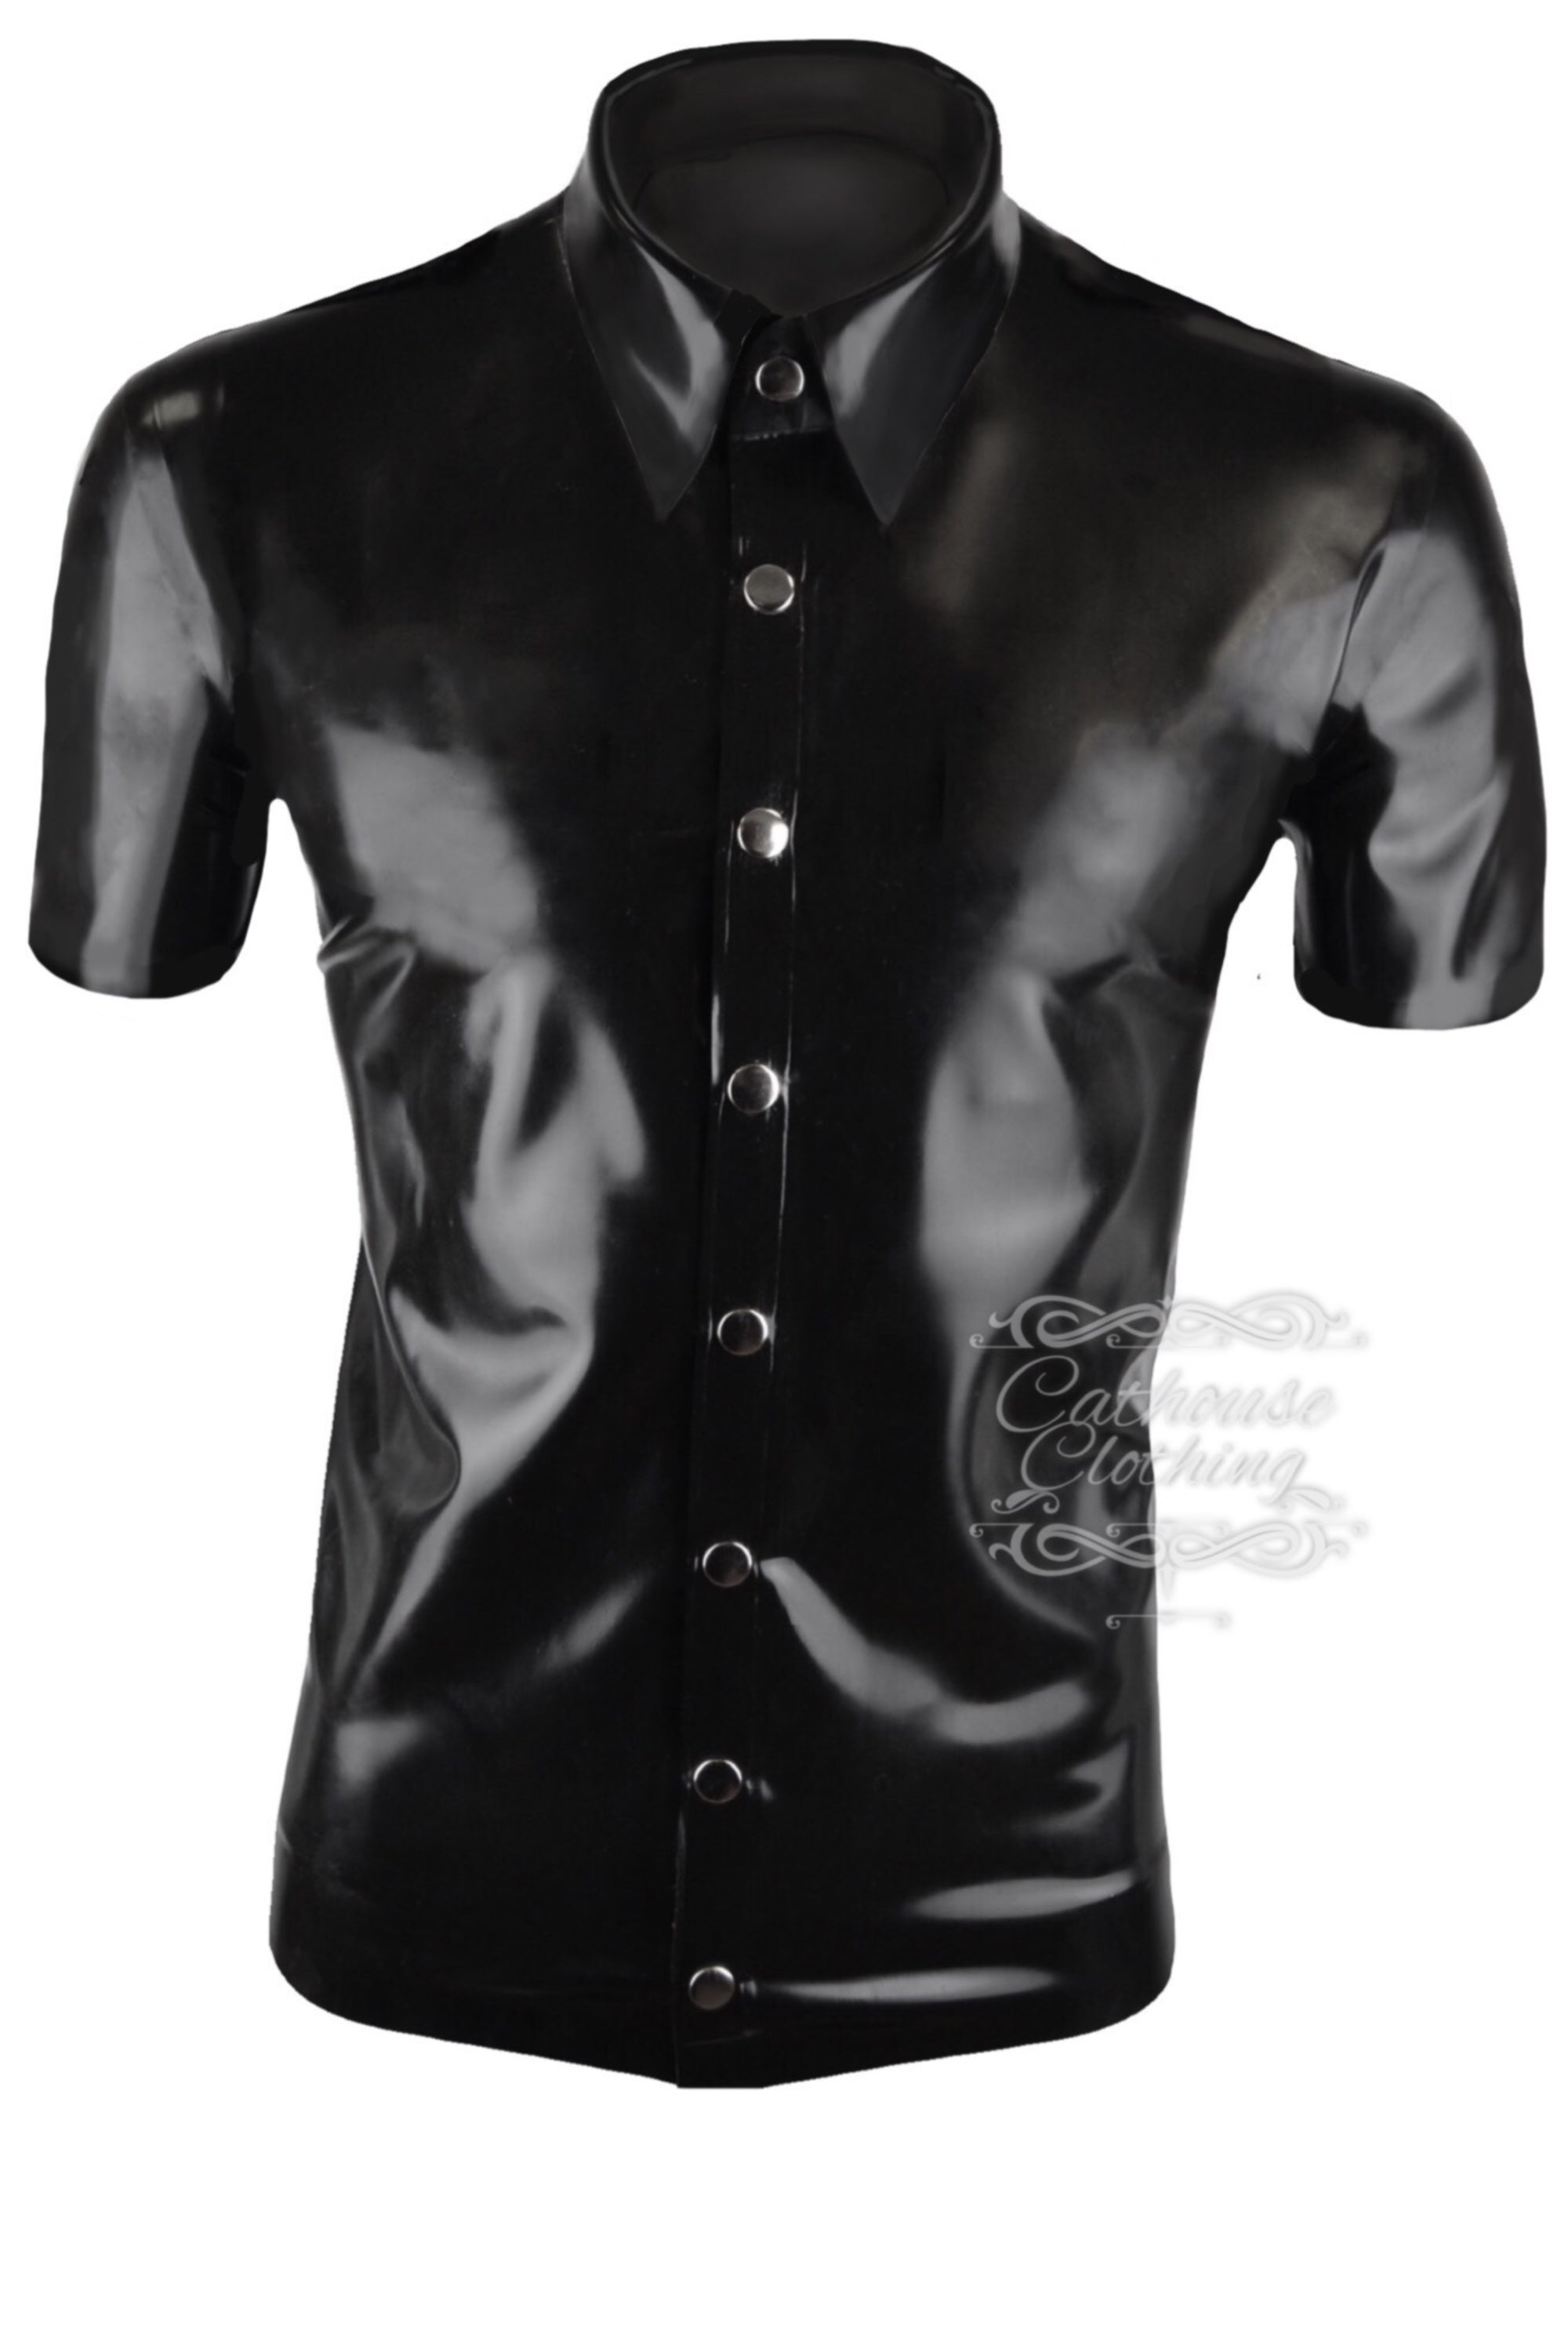 Men's latex shirt